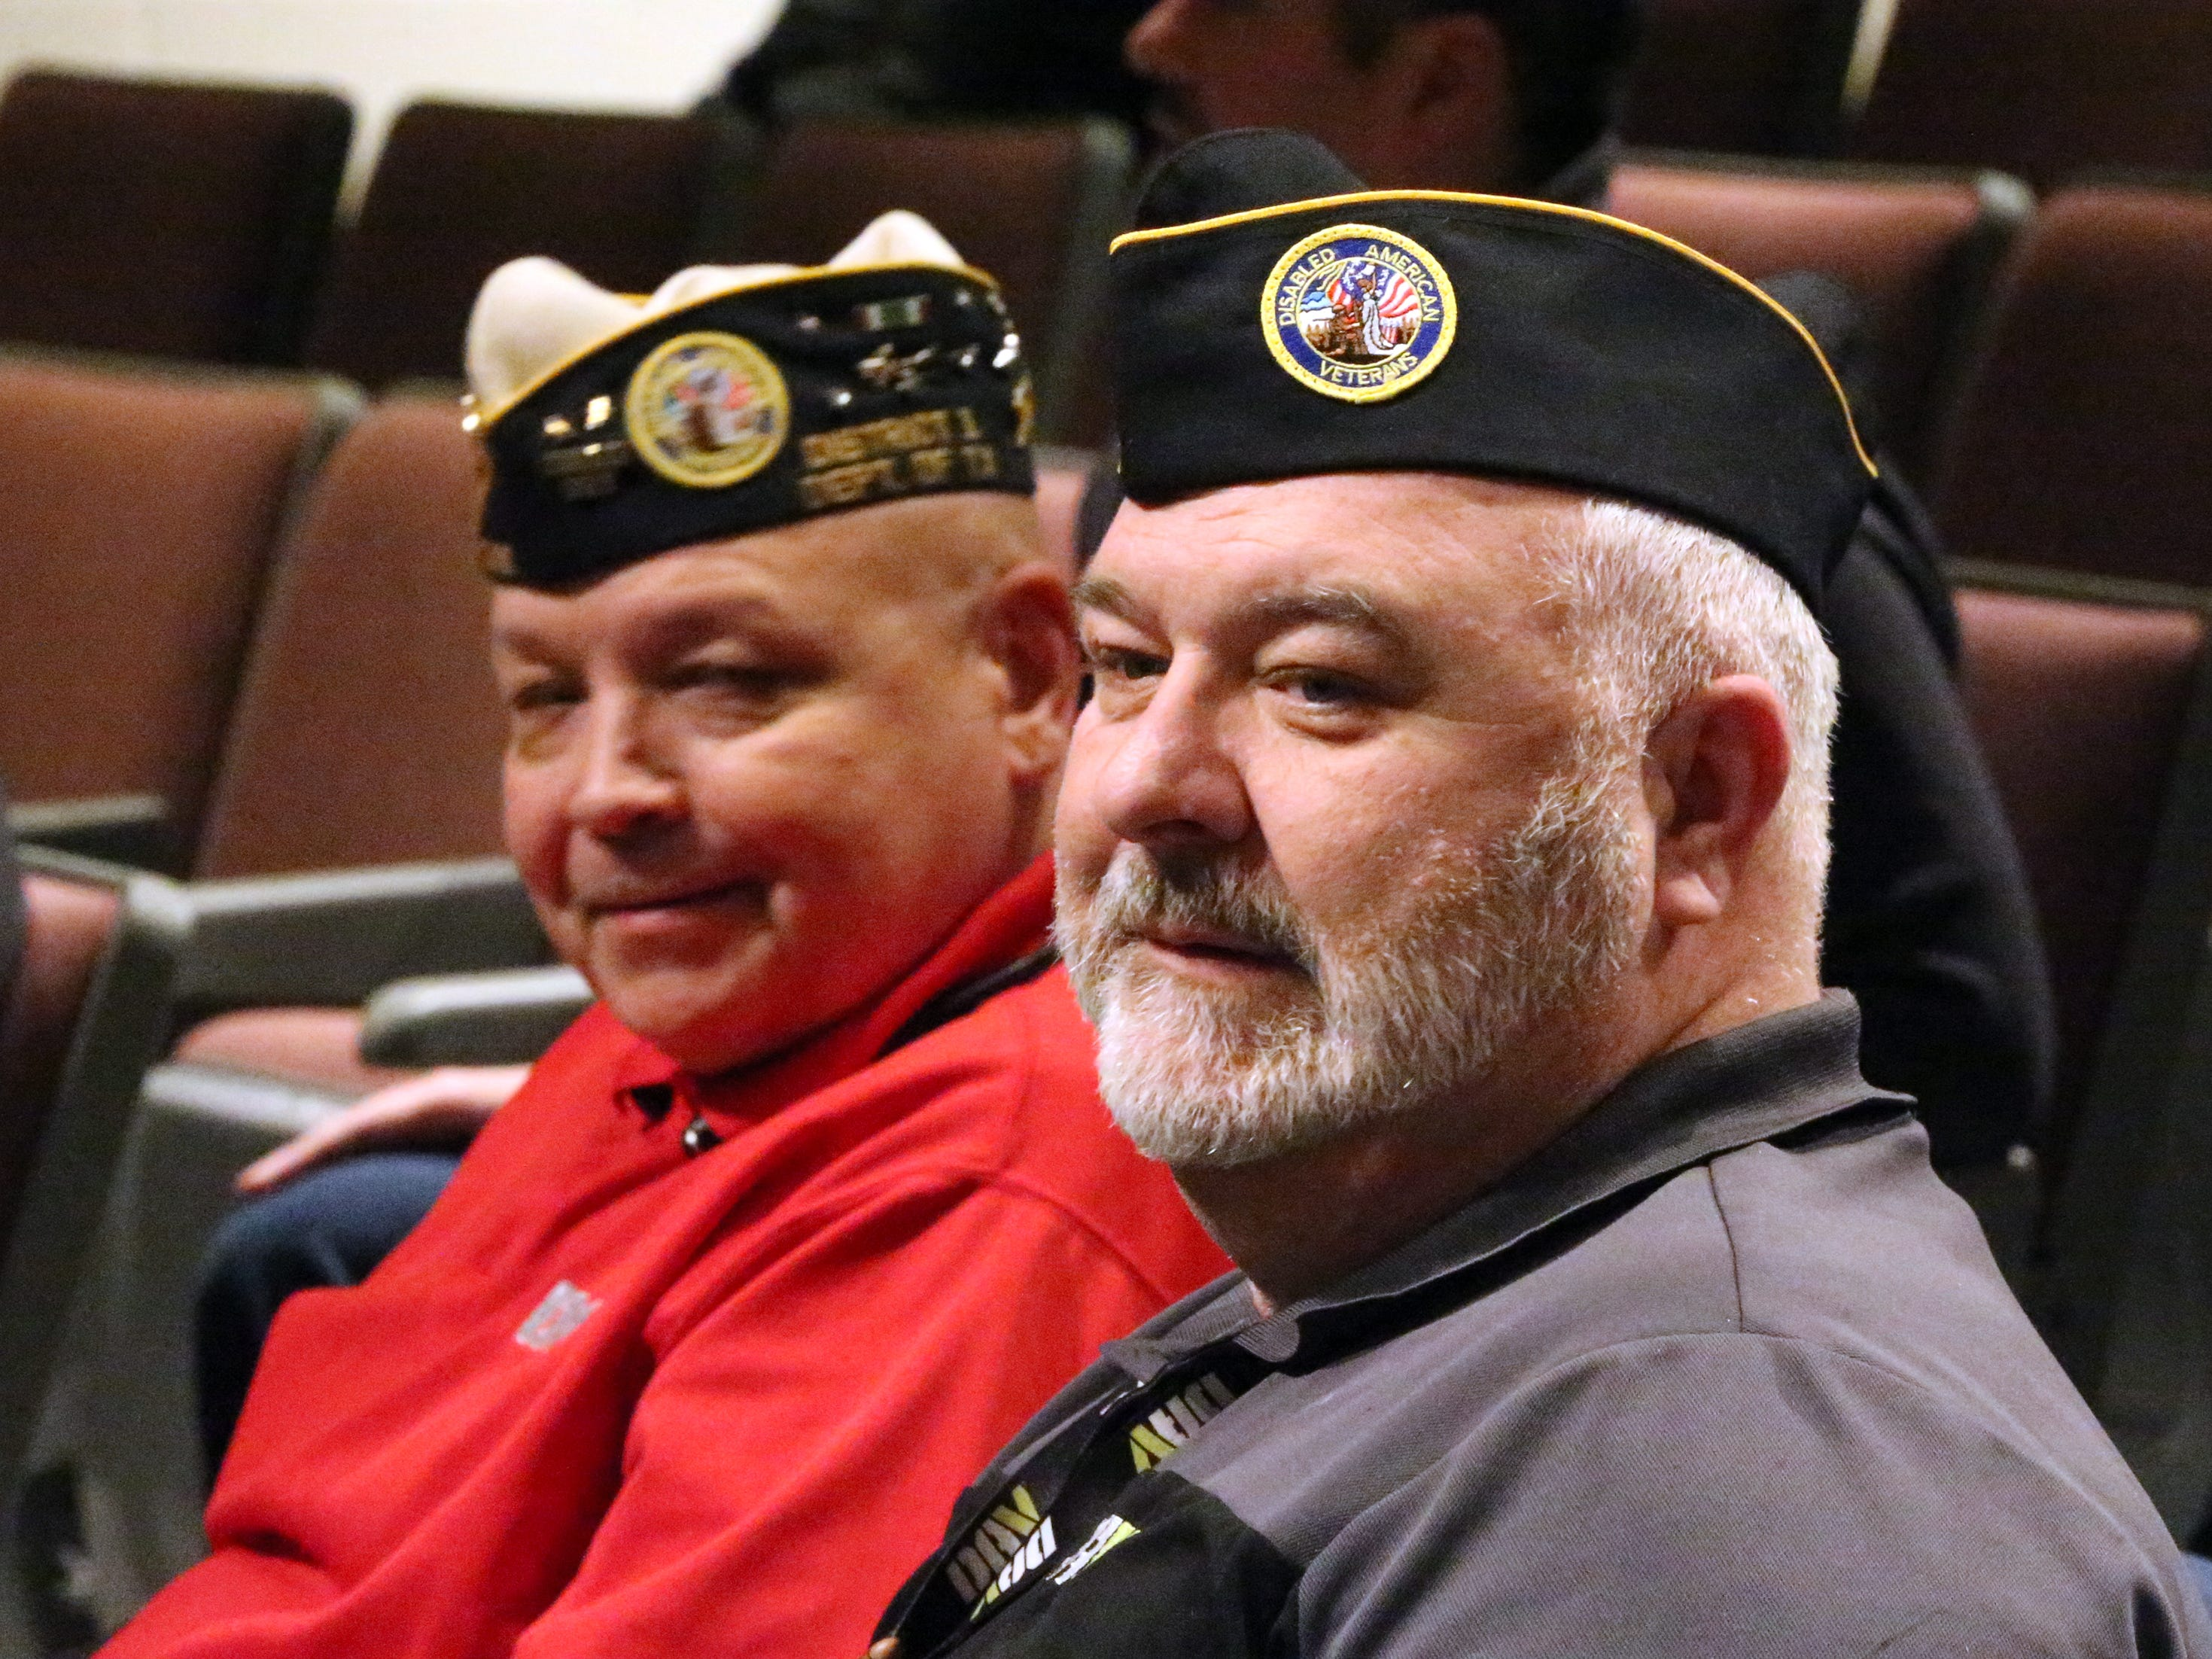 Military veterans David Garcia, left, and Marcus Duval attended Beto O'Rourke's final town hall on veterans issues Friday at Chapin High School.